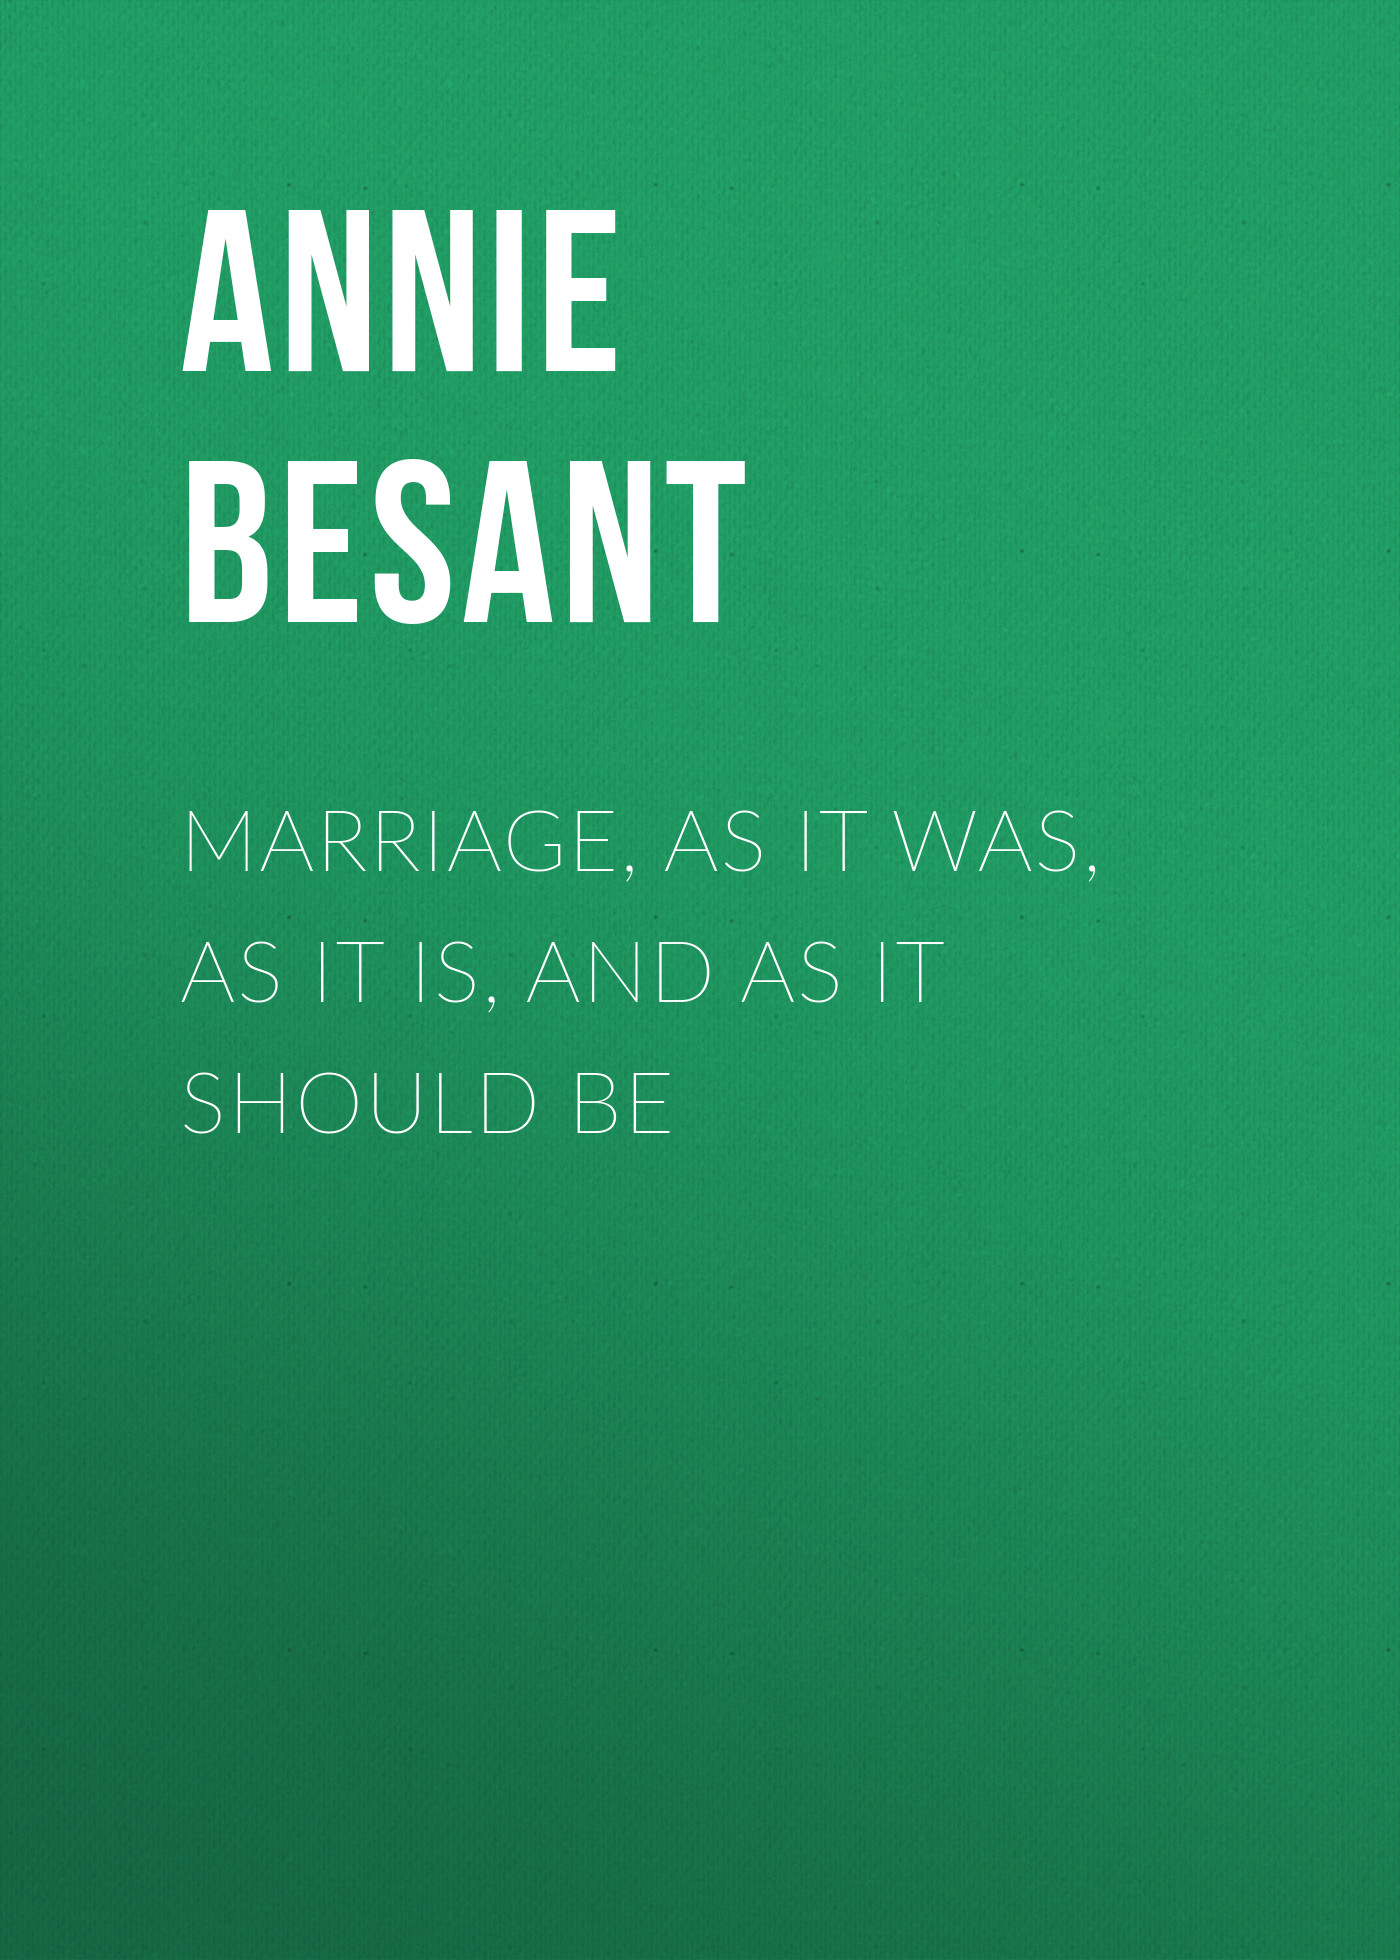 Annie Besant Marriage, As It Was, As It Is, And As It Should Be